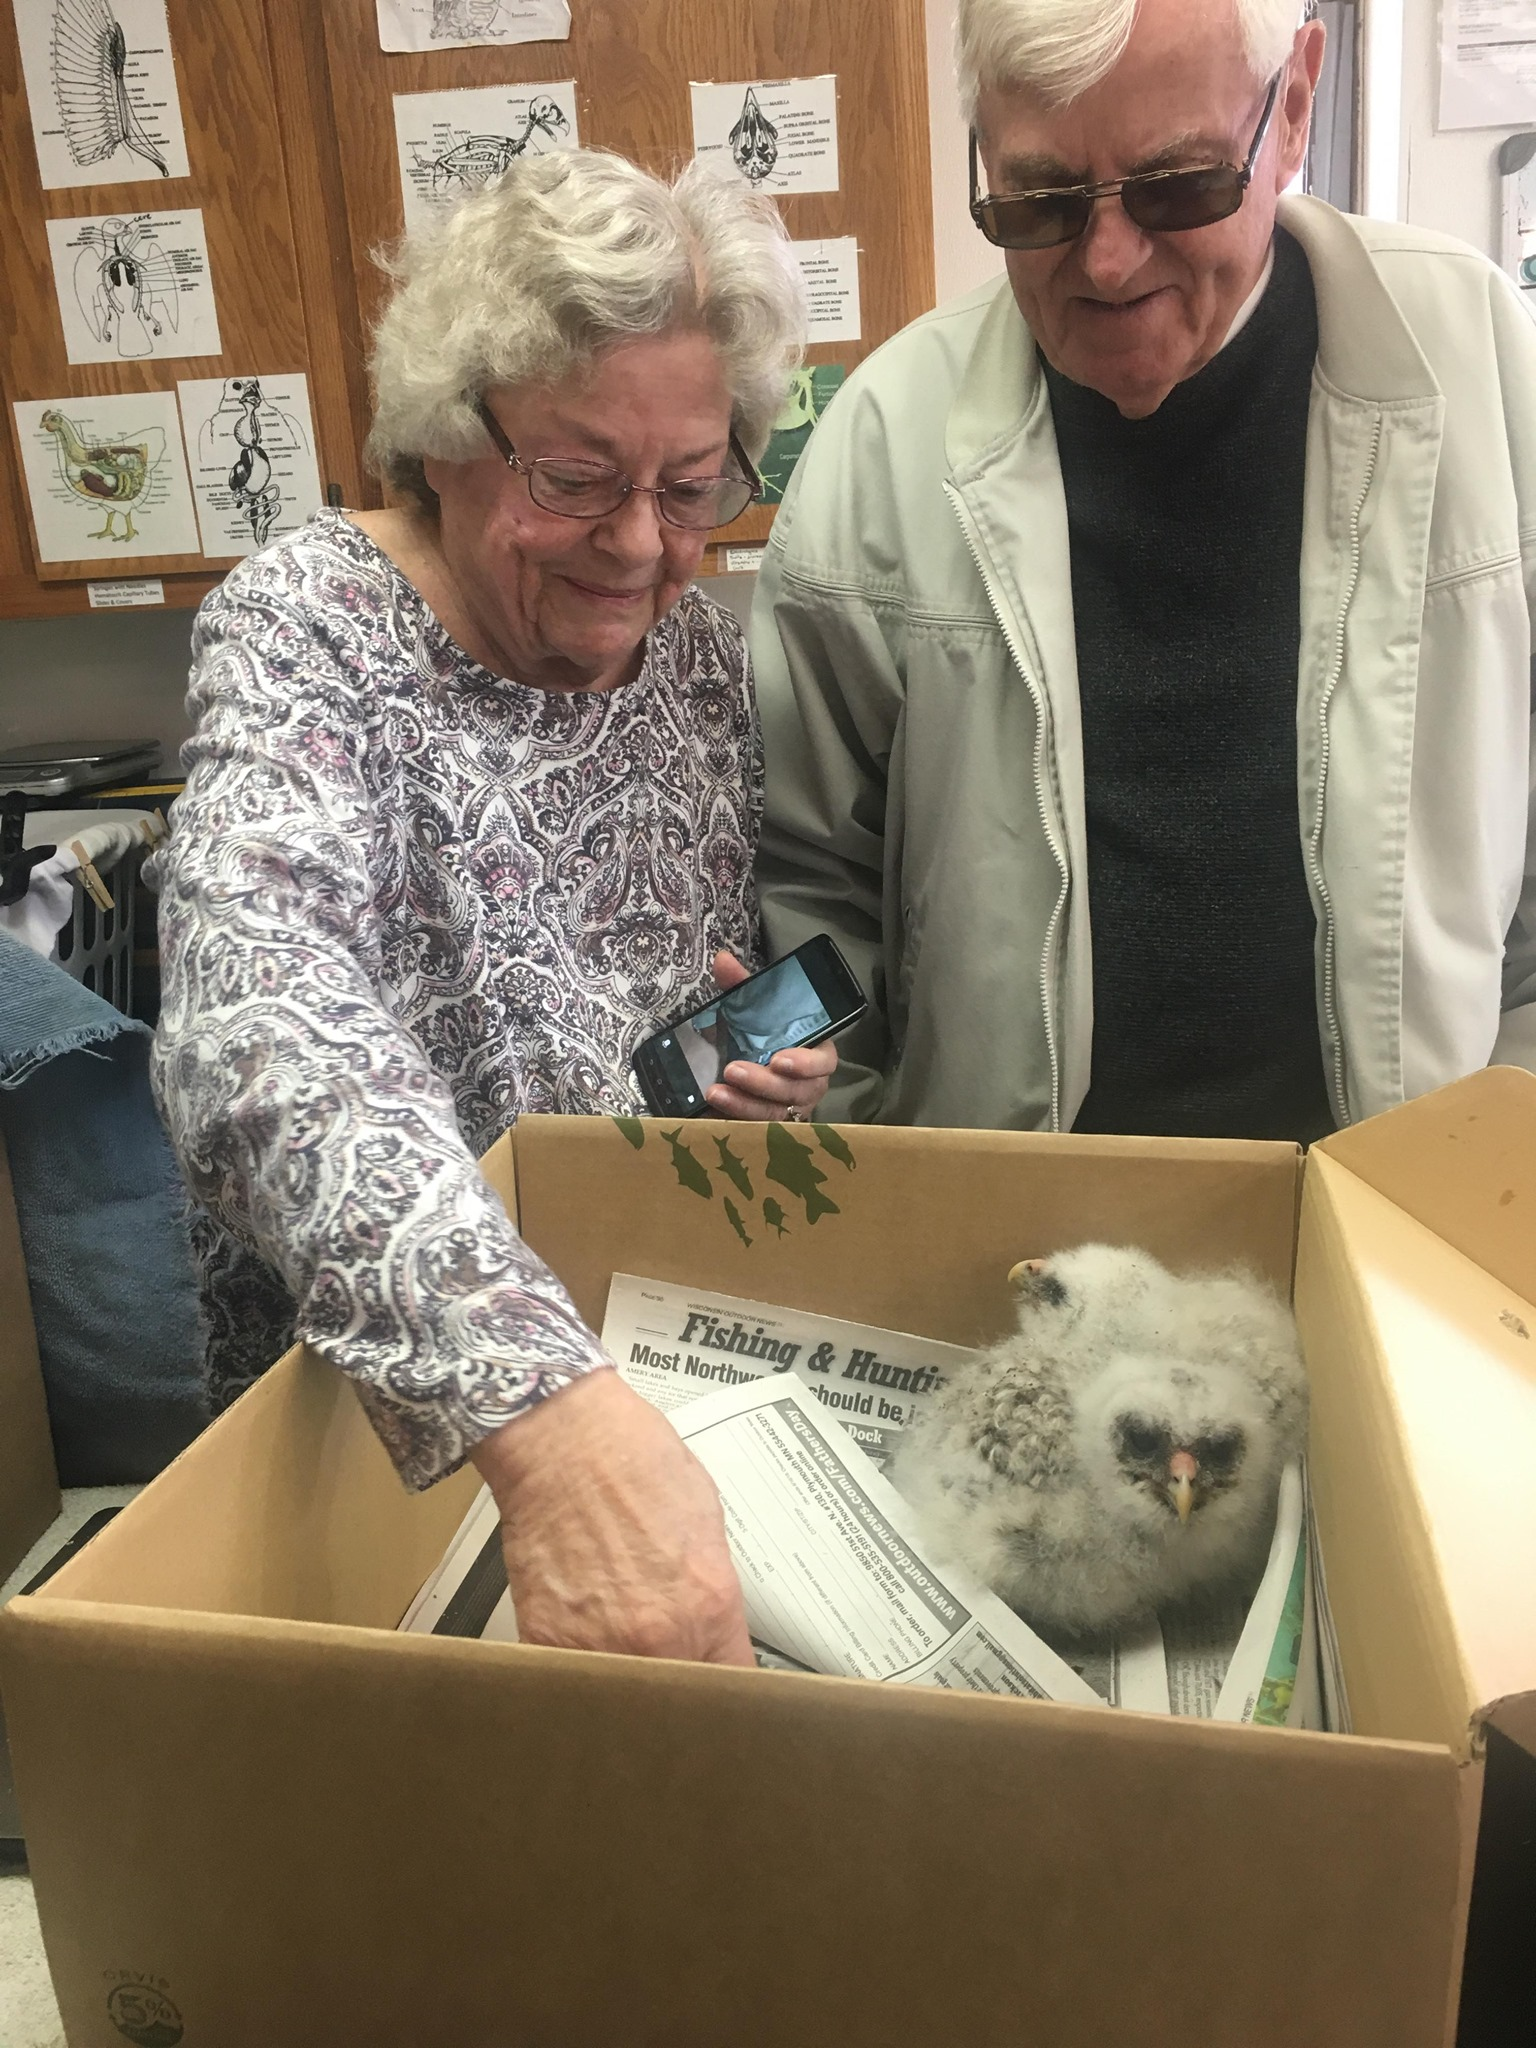 The Knutsons are wonderful volunteer transporters from the WI Rapids area. This week they transported two young Barred Owls that were injured when their tree was cut down. A young Great-horned Owl was injured when it feel from its nest.